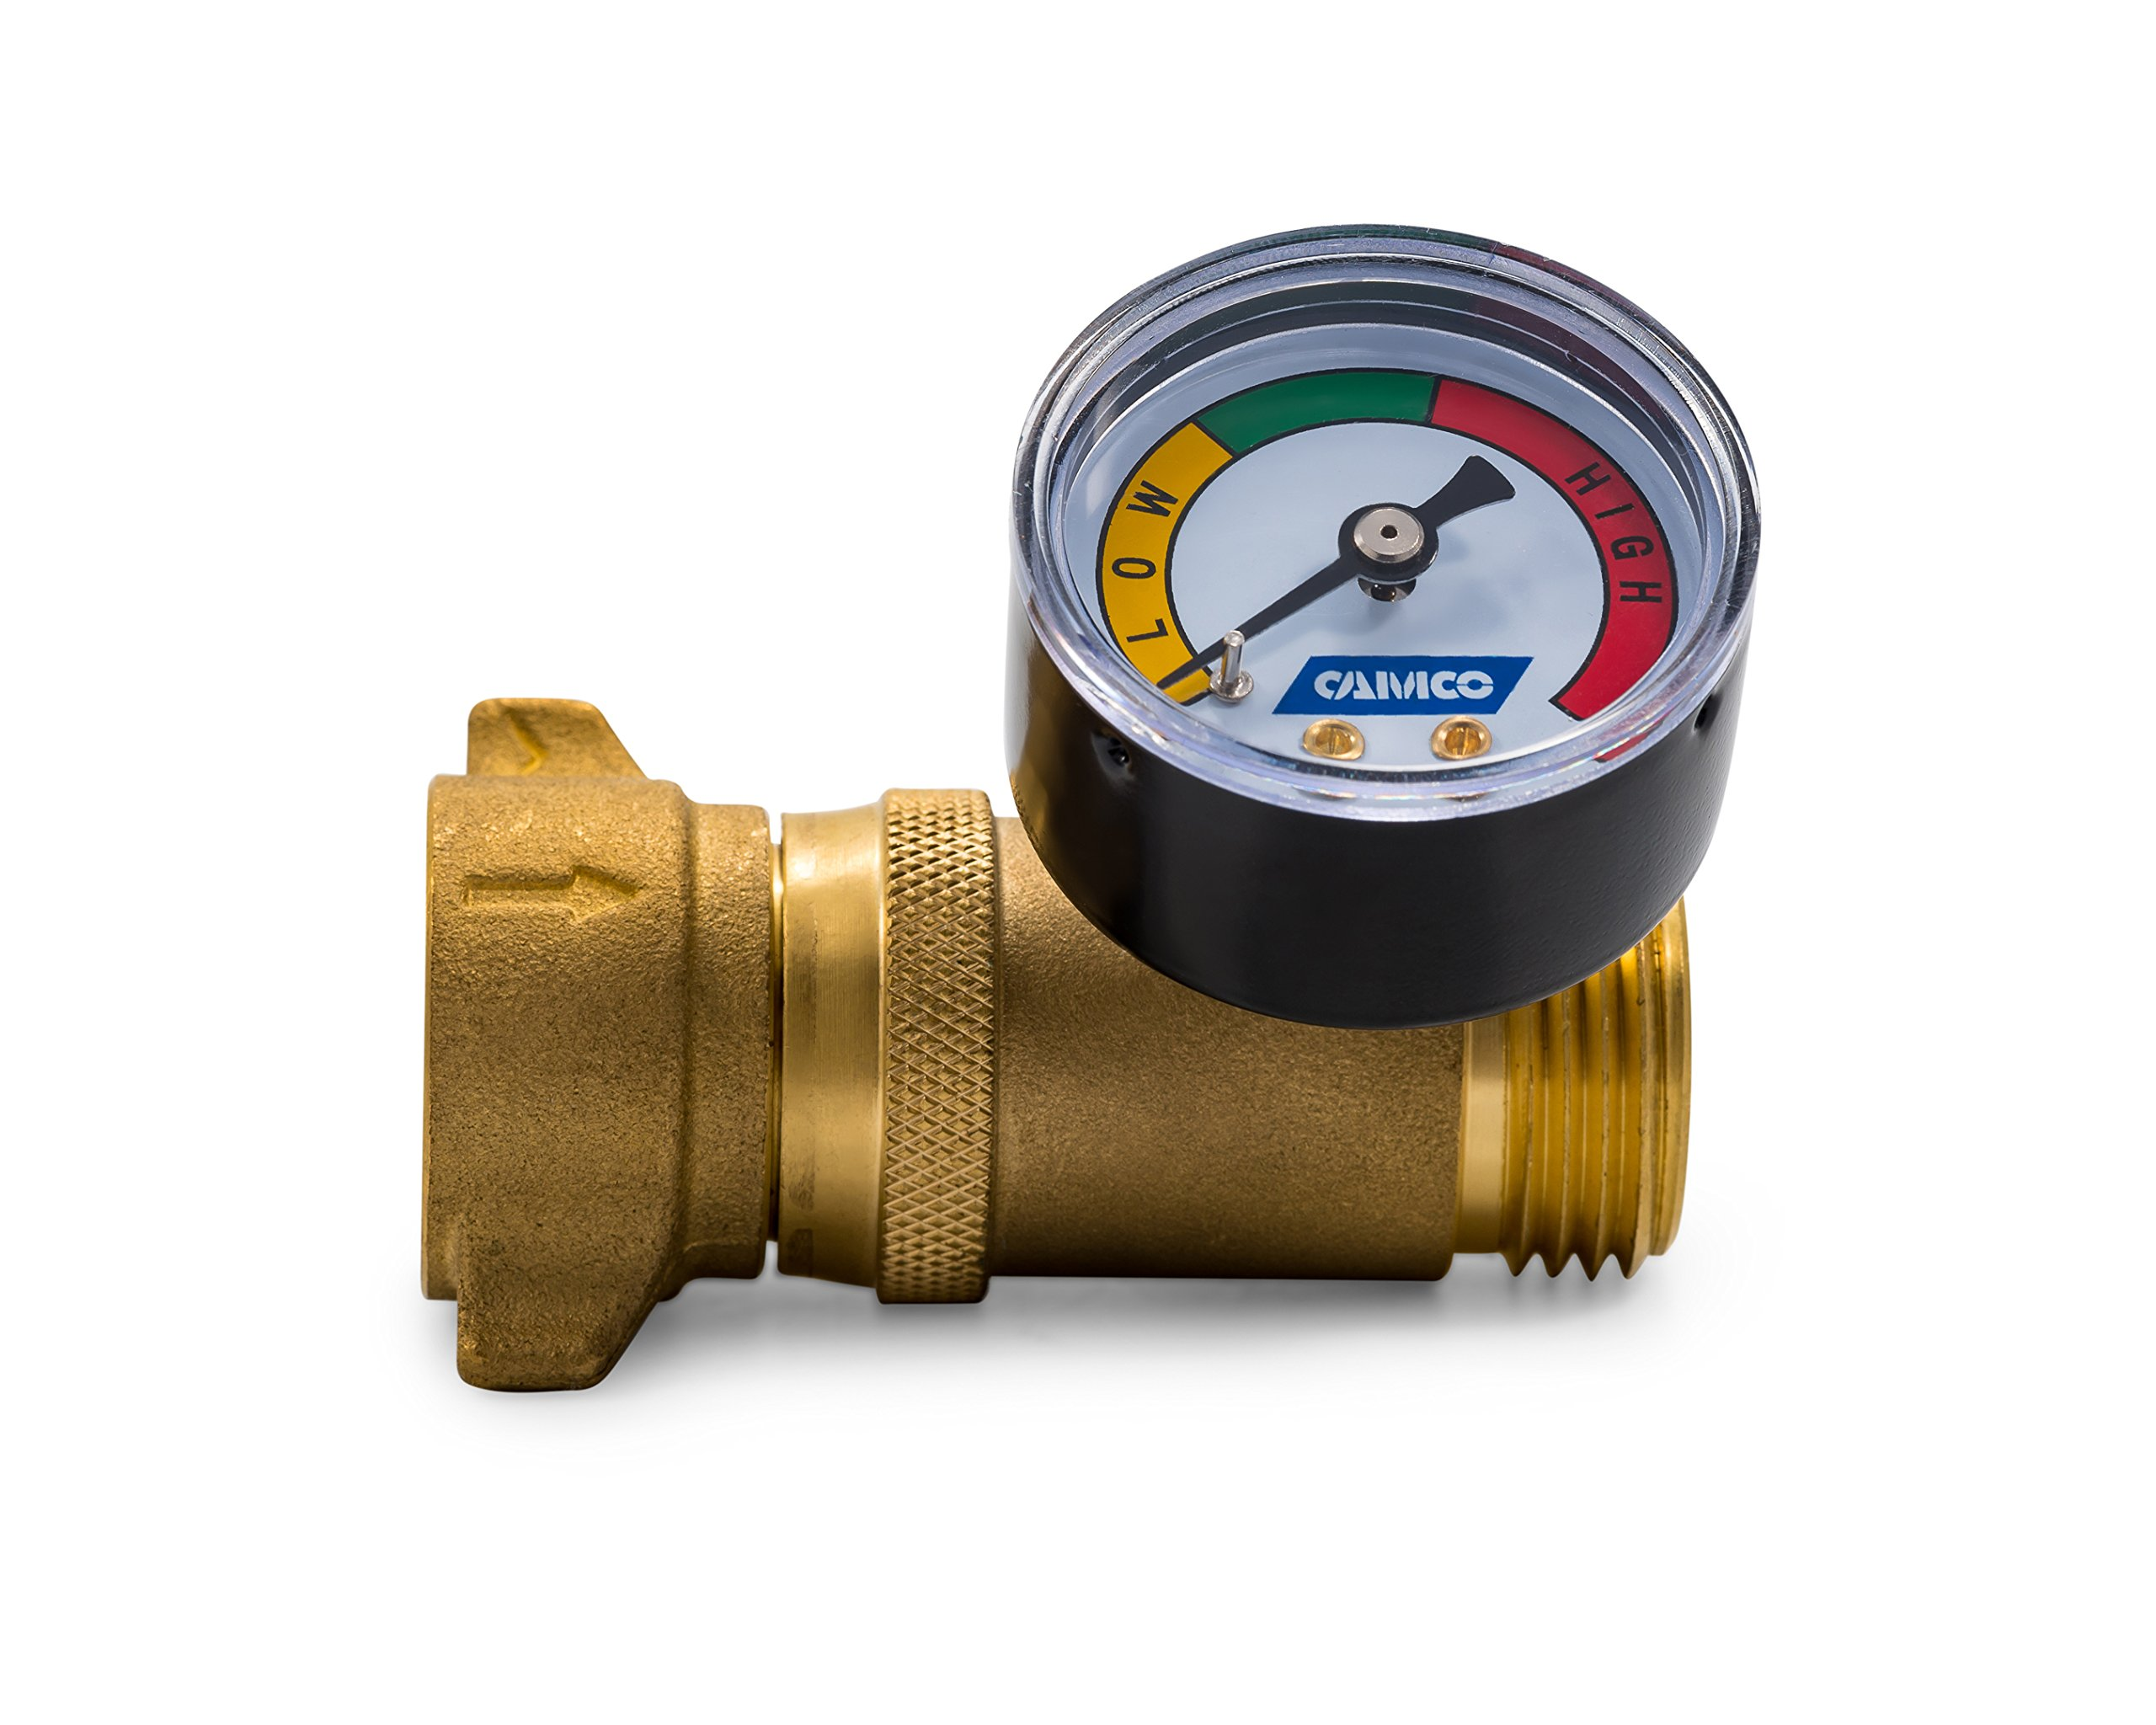 Camco Brass Water Pressure Regulator with Gauge- Helps Protect RV Plumbing and Hoses from High-Pressure City Water - Easy Read Gauge, Lead Free (40064) by Camco